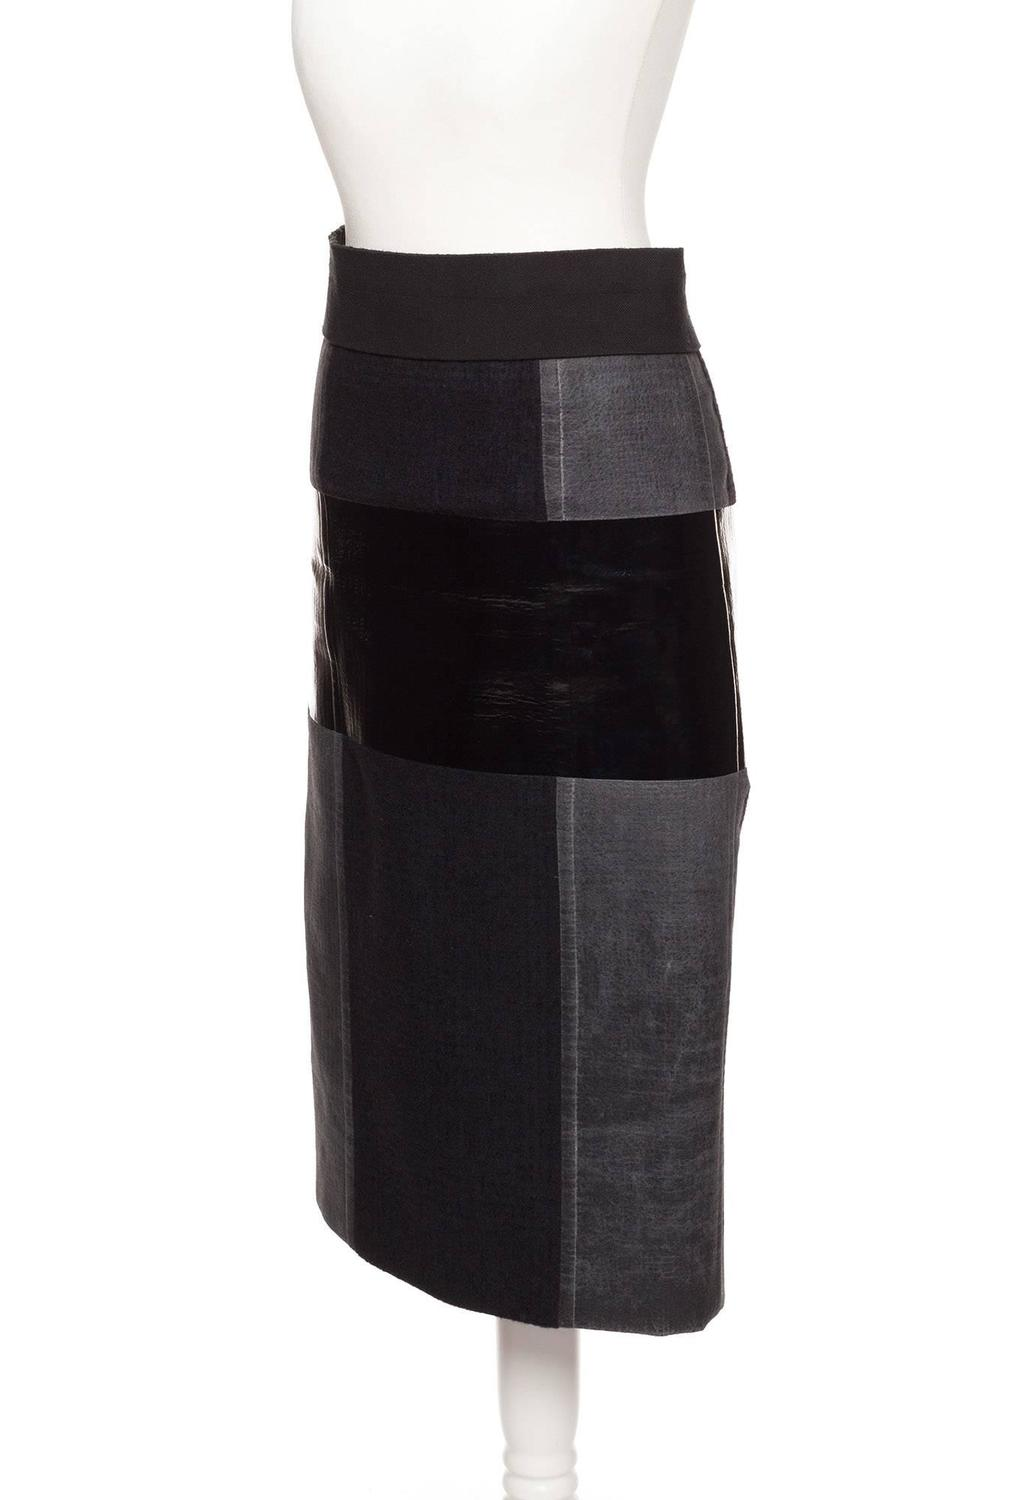 calvin klein skirt with leather and pvc color blocked